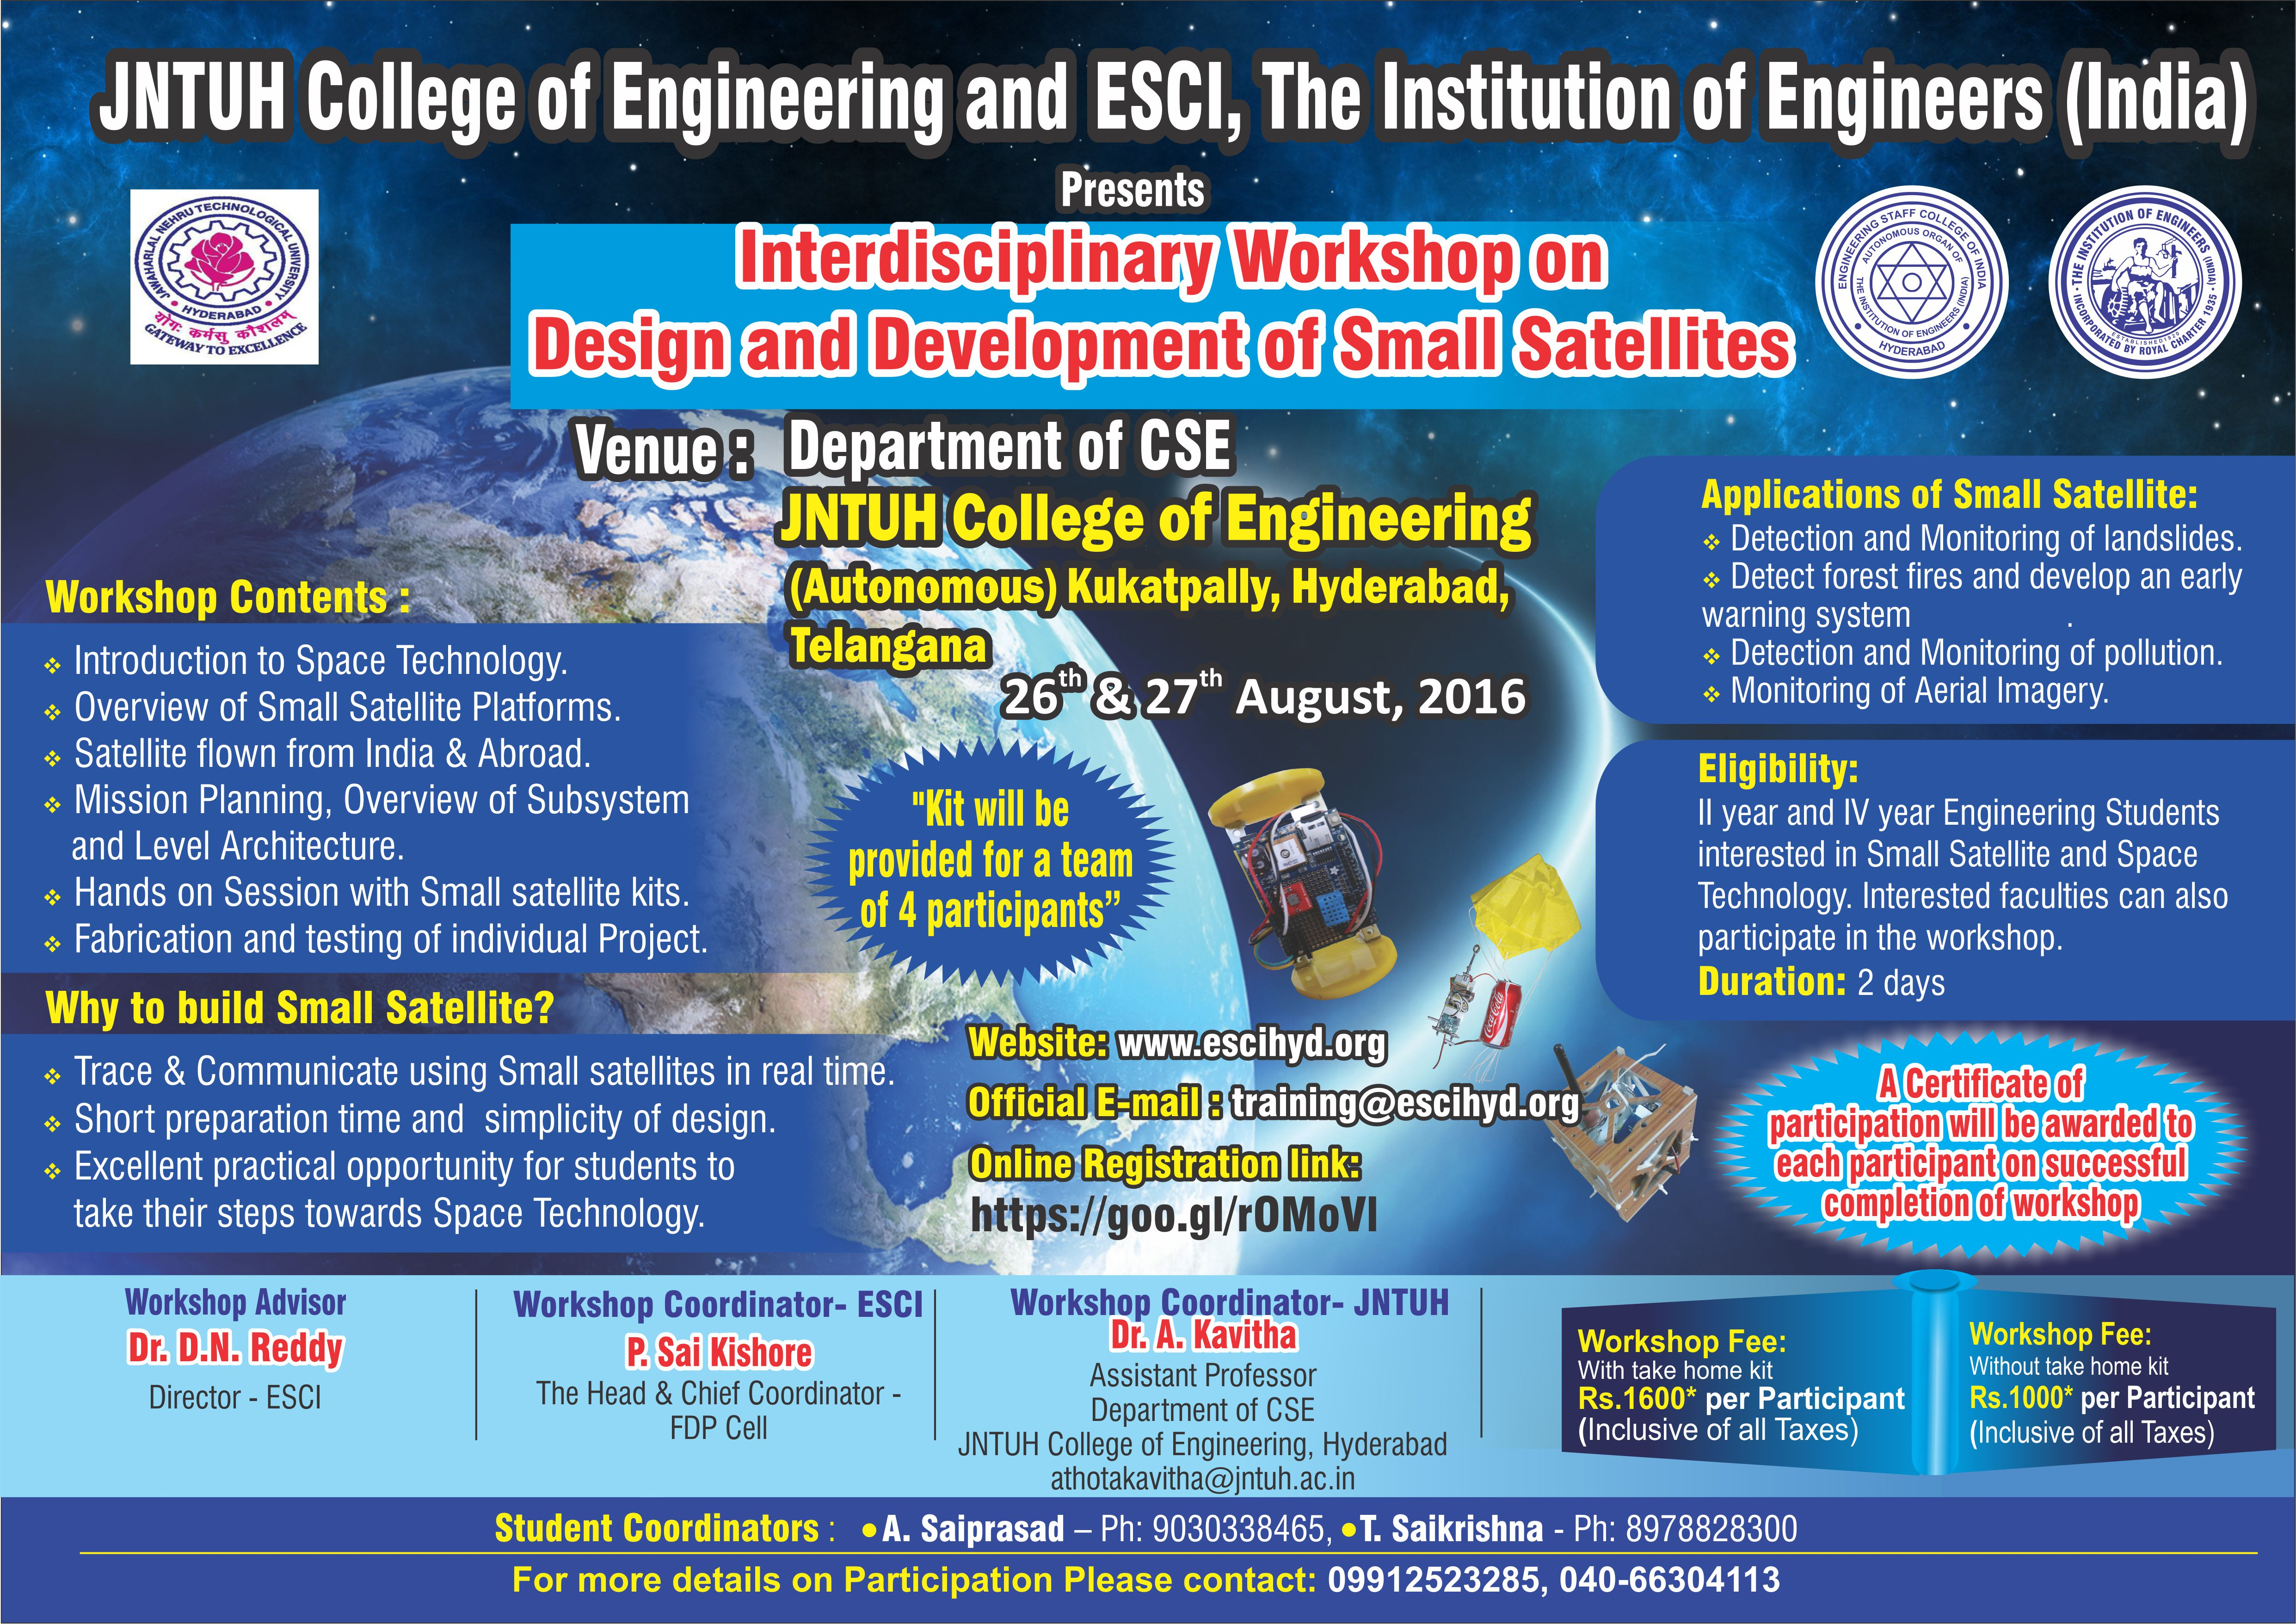 Poster design for college fest - Inter Disciplinary Workshop On Design And Development Of Small Satellites During 26 27 August 2016